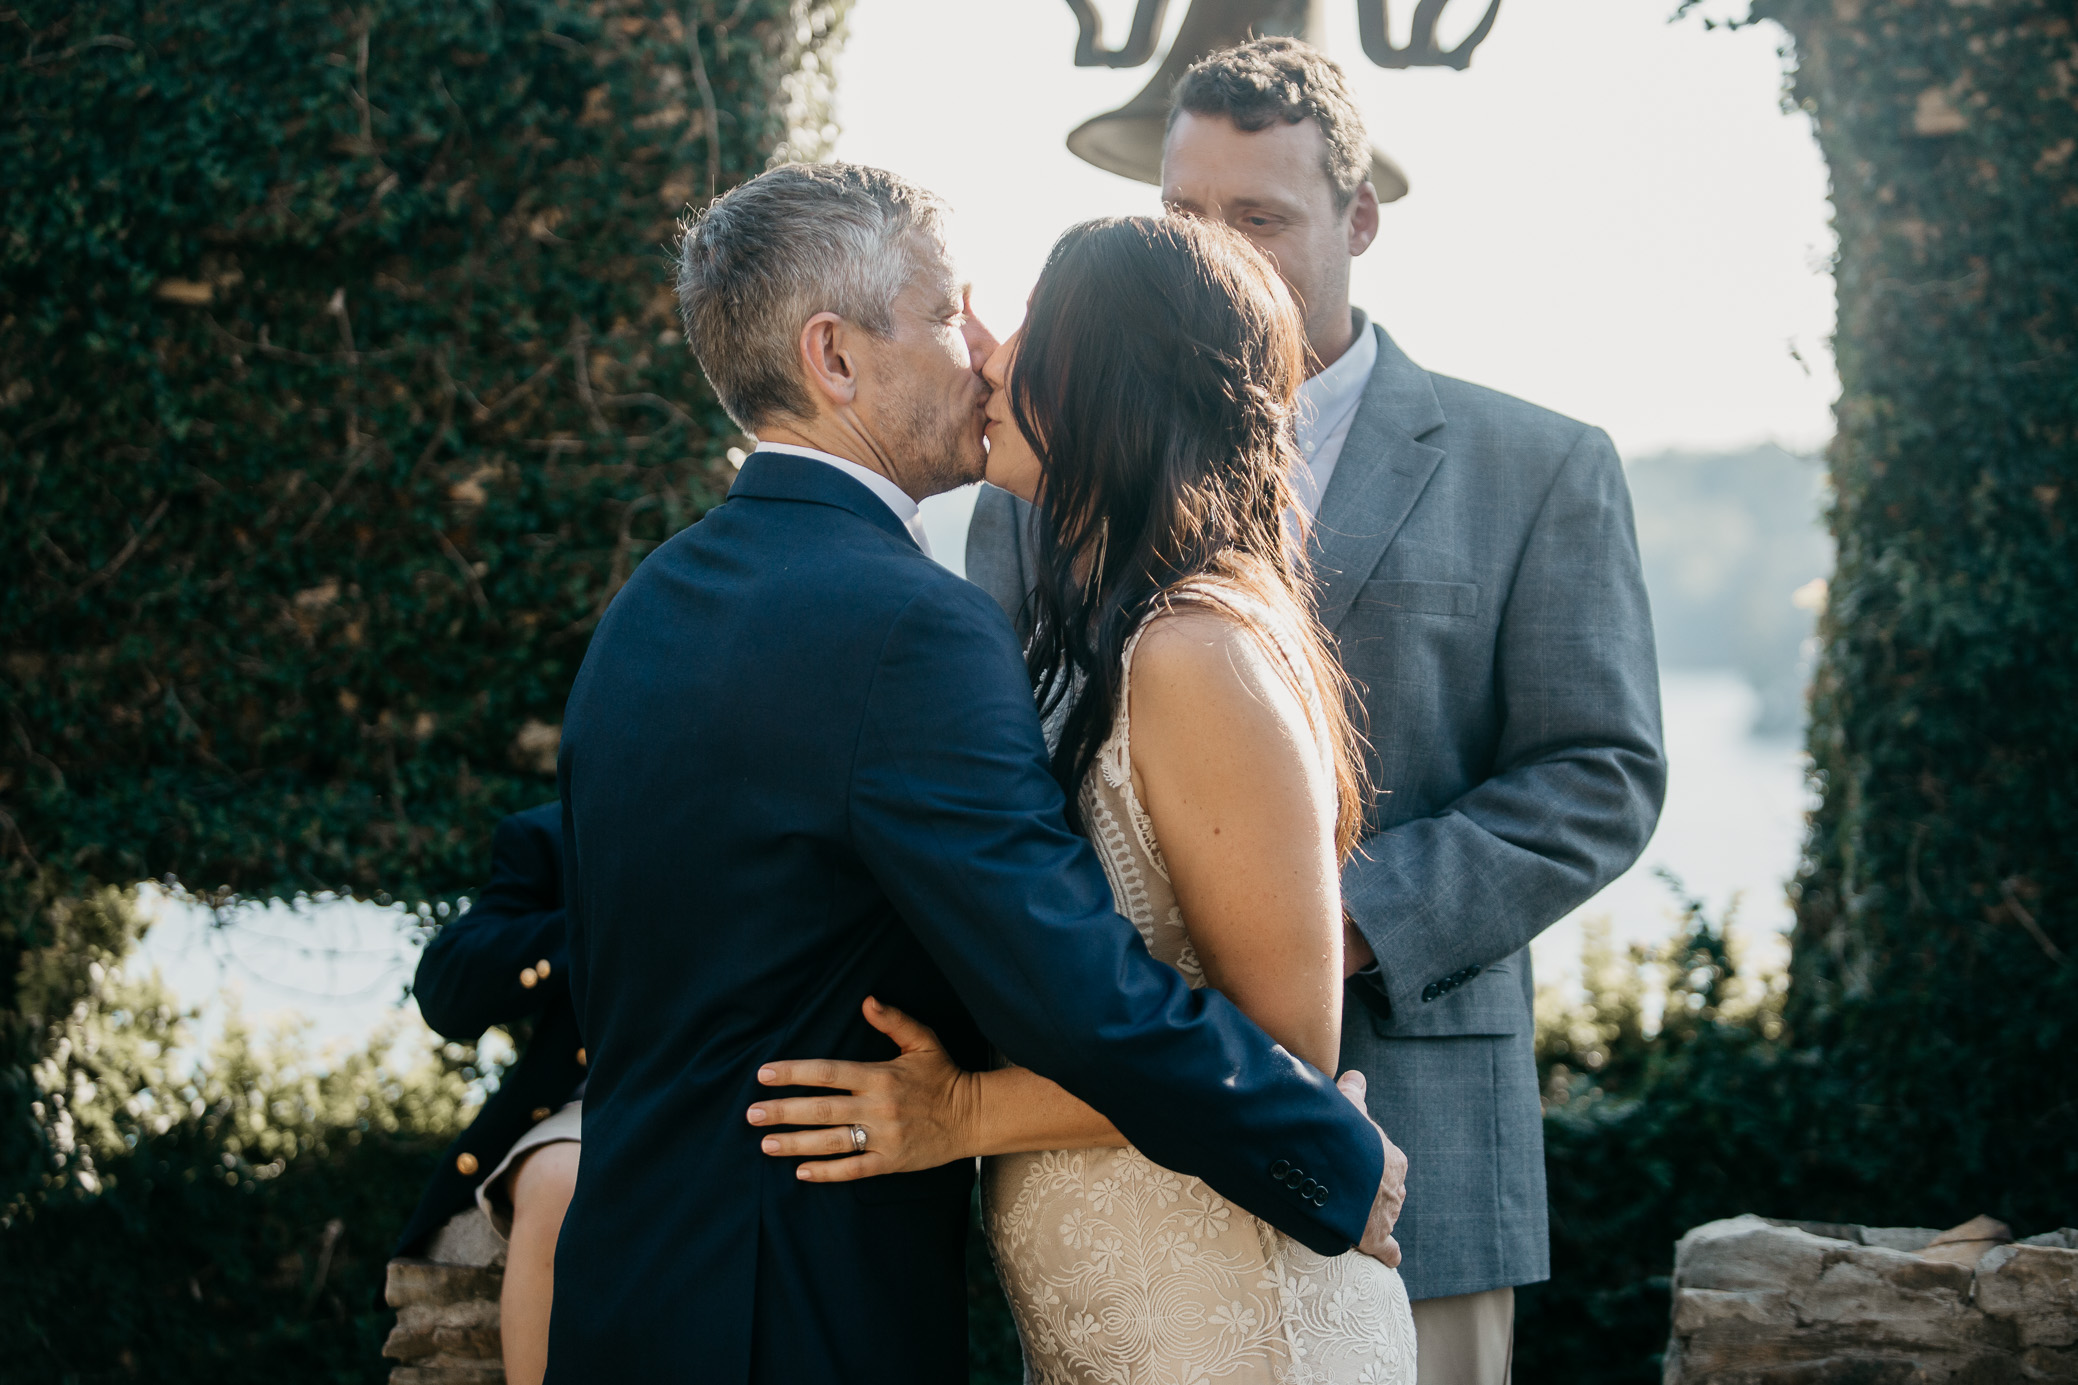 Tuscaloosa, Alabama wedding photography at Whispering Cliffs / NorthRiver Yacht Club on October 7th, 2018 by David A. Smith of DSmithImages Wedding Photography, Portraits, and Events in the Birmingham, Alabama area.